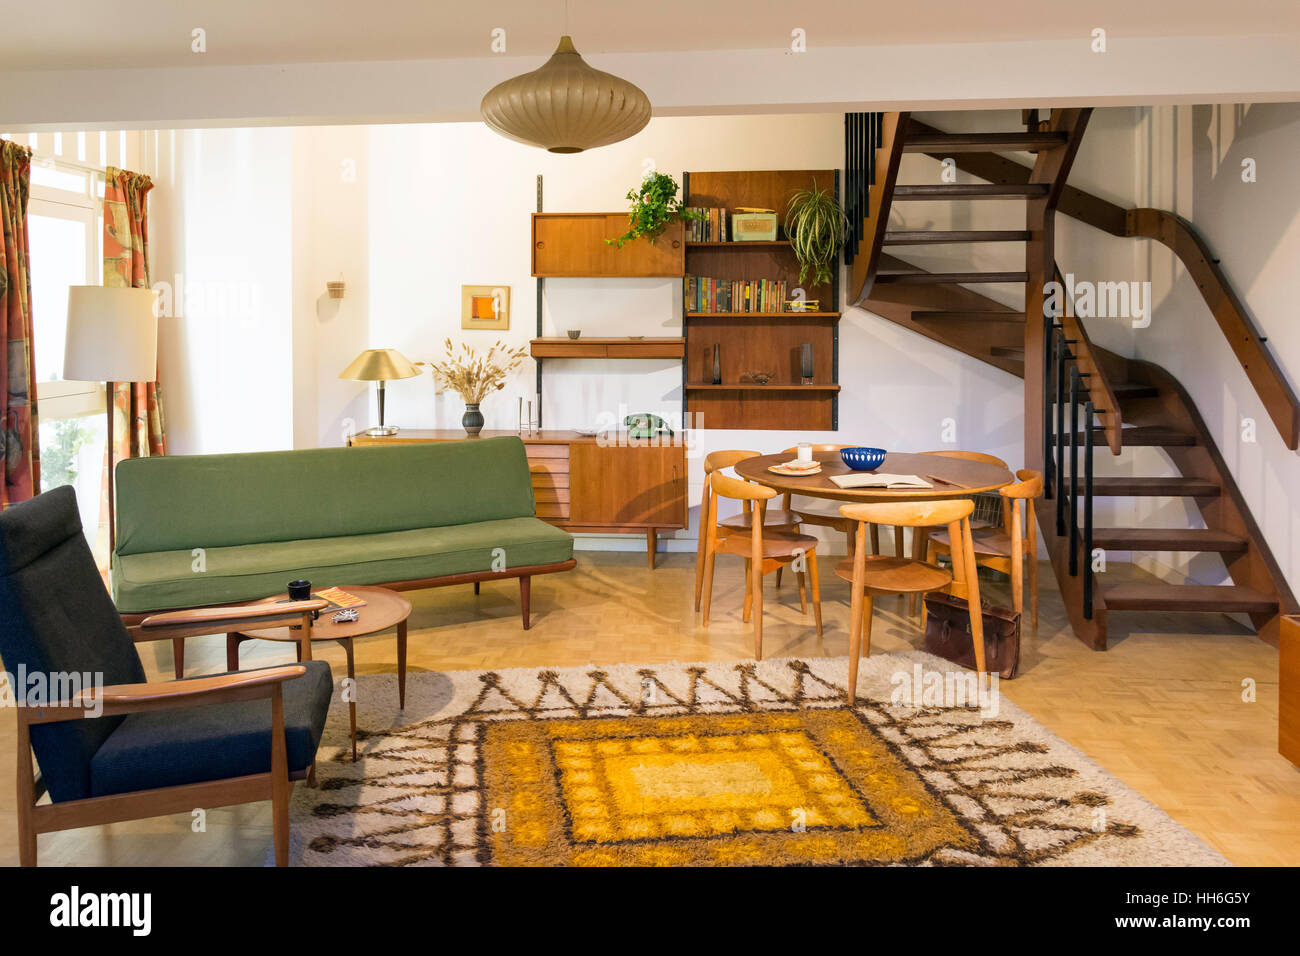 A 1965 Living Room In The Geffrye Museum Shoreditch London Borough Of Hackney England United Kingdom